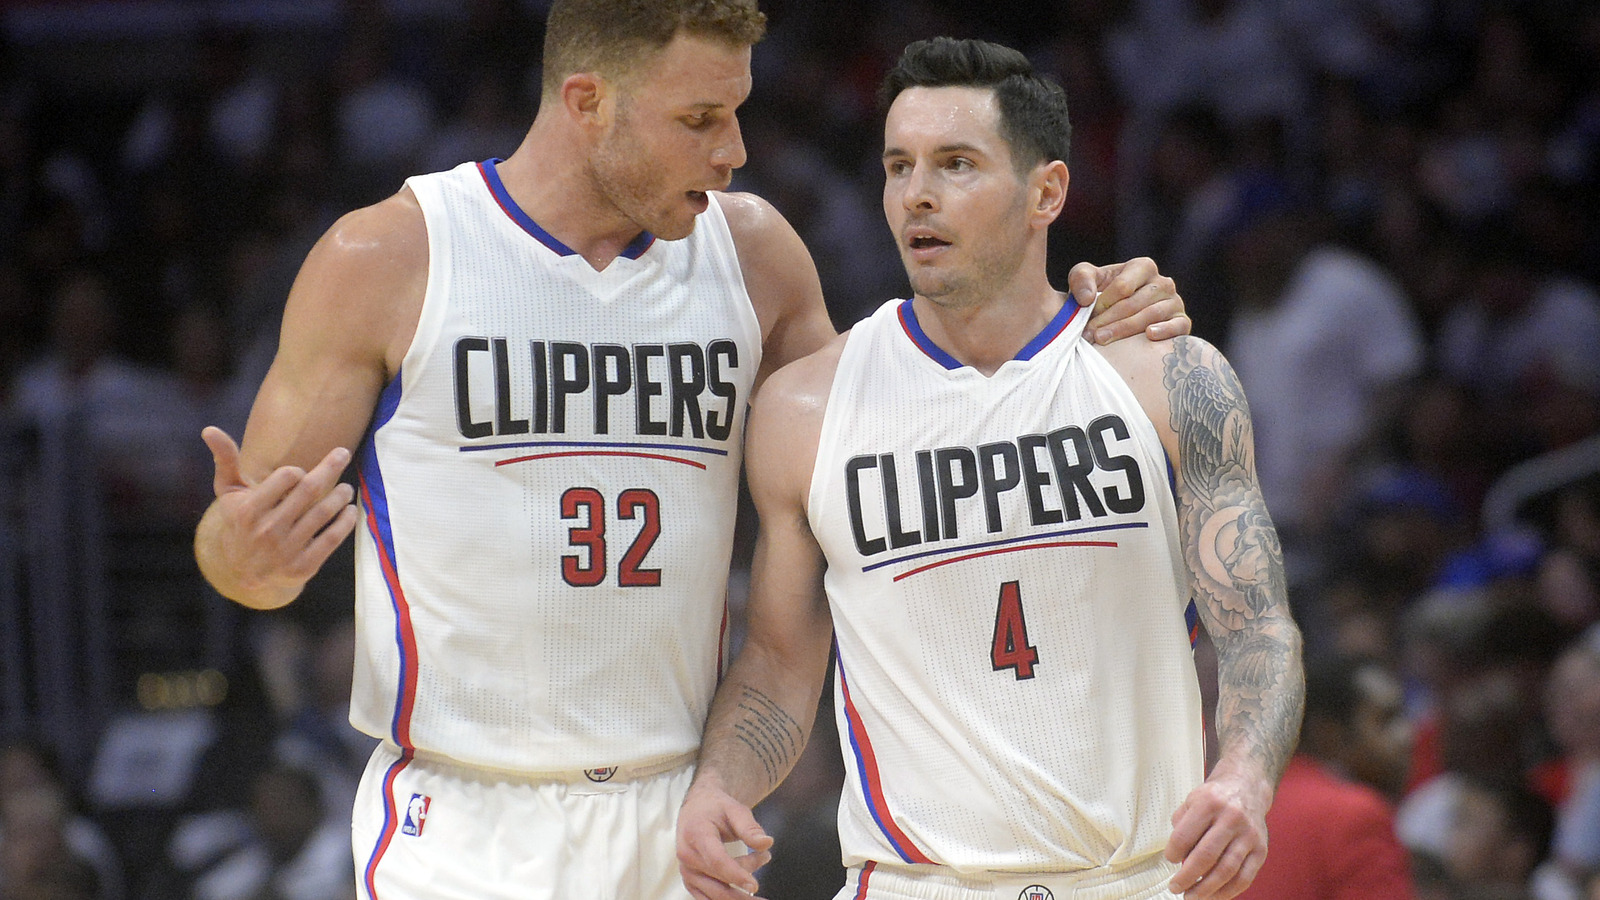 La clippers the impact of blake griffins surgery on the team foxsports com - Blake Griffin Speaks With Los Angeles Clippers Guard Jj Redick During A Time Out Against The Utah Jazz In The Second Half In Game 2 Of The First Round Of